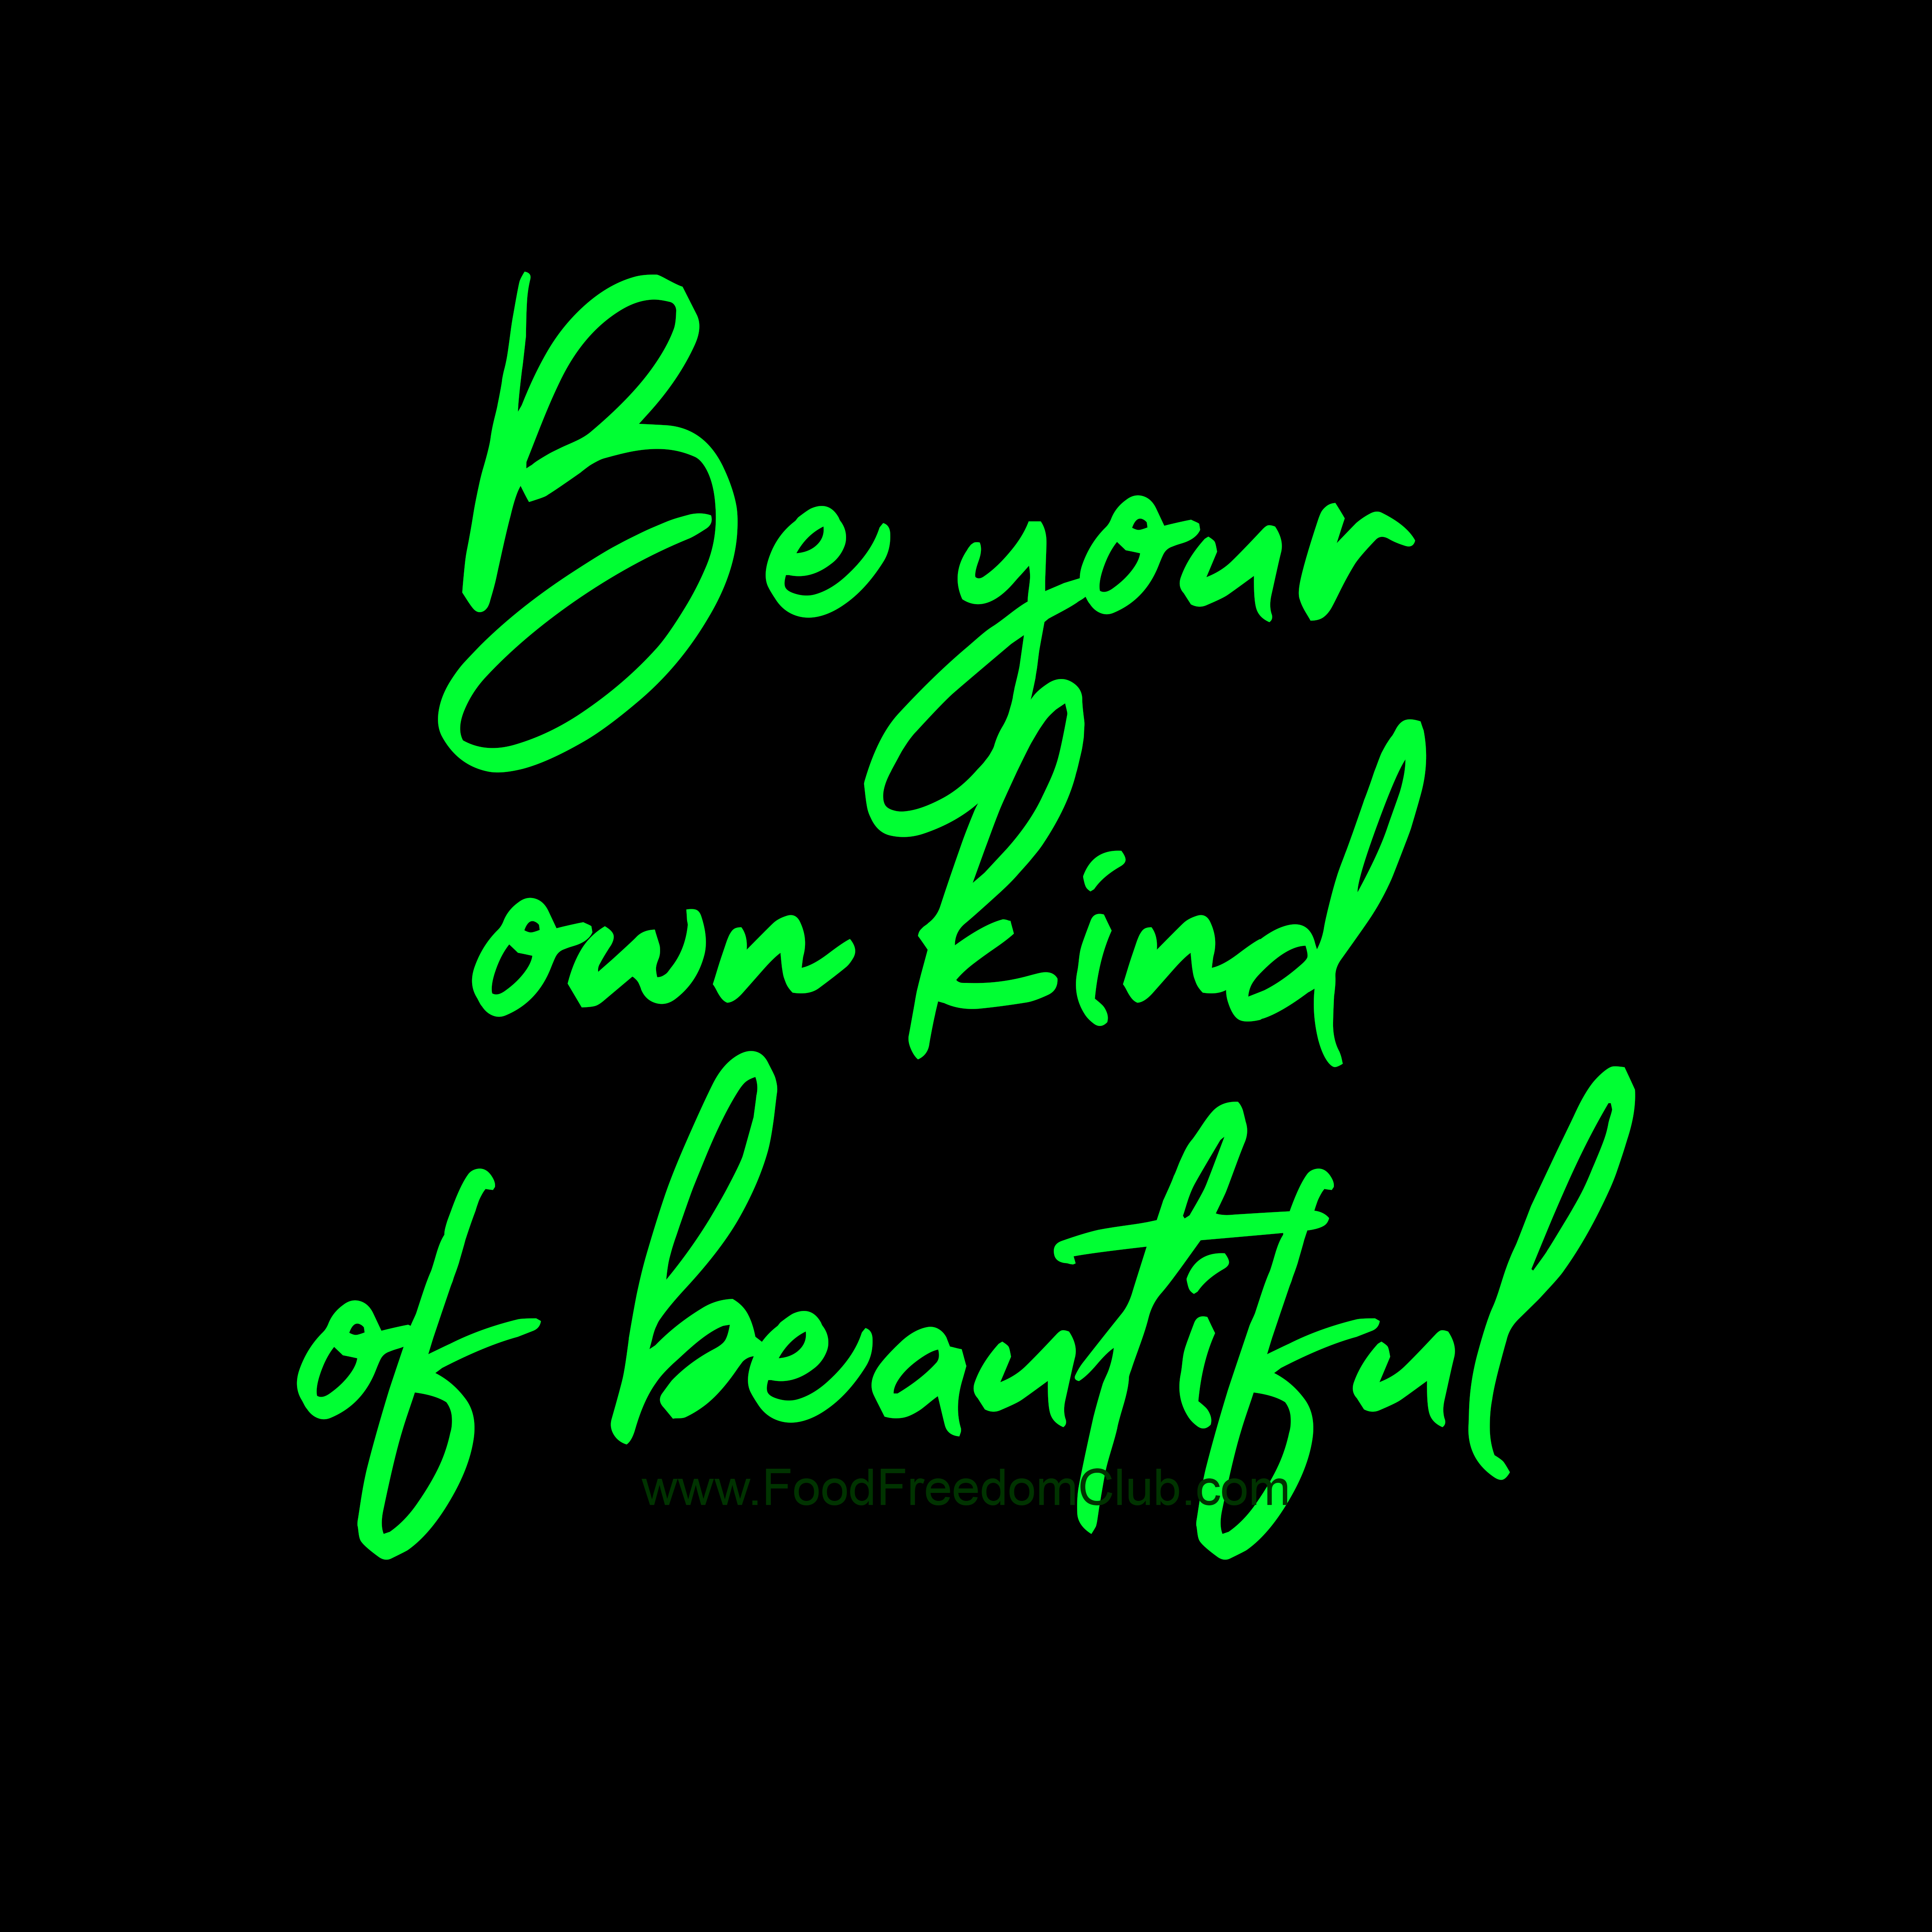 Be Your Own Kind Of Beautiful Food Freedom Club Inspirational Uplifting Quotes Encouragement Quotes Psychology Quotes